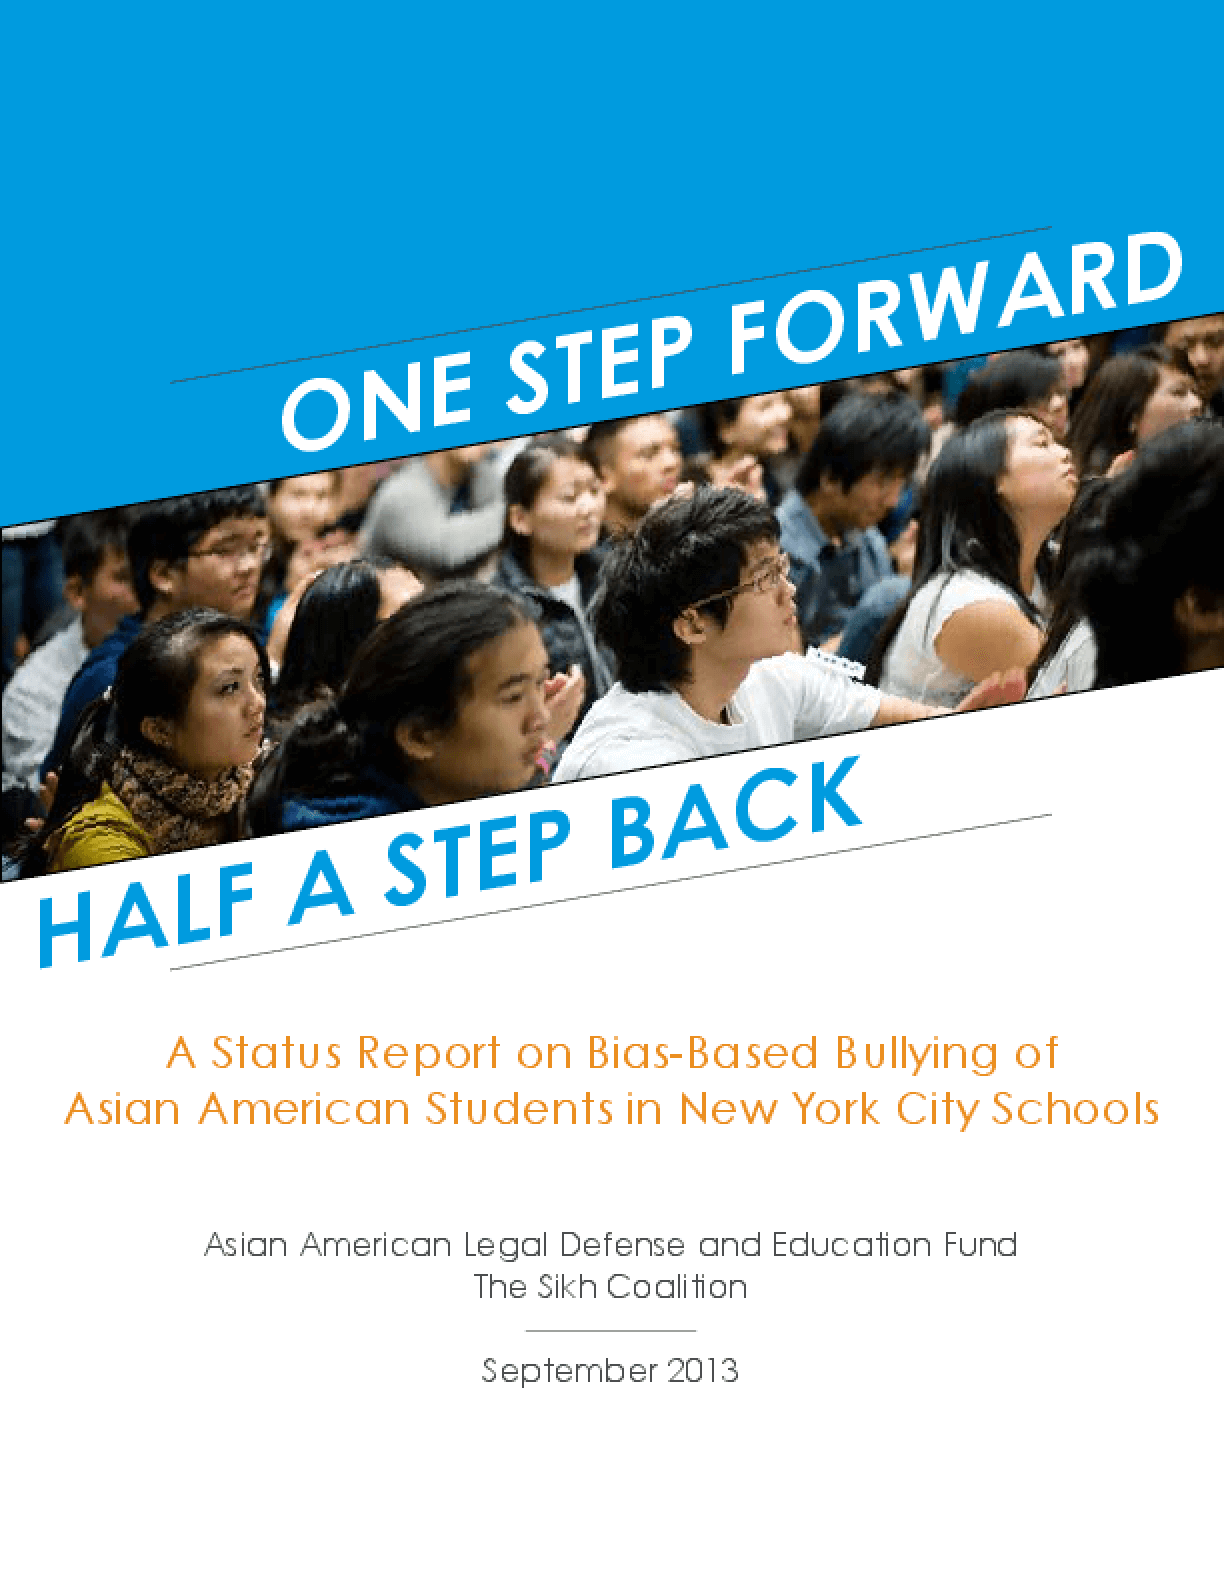 One Step Forward Half a Step Back: A Status Report on Bias-Based Bullying of Asian American Students in New York City Schools